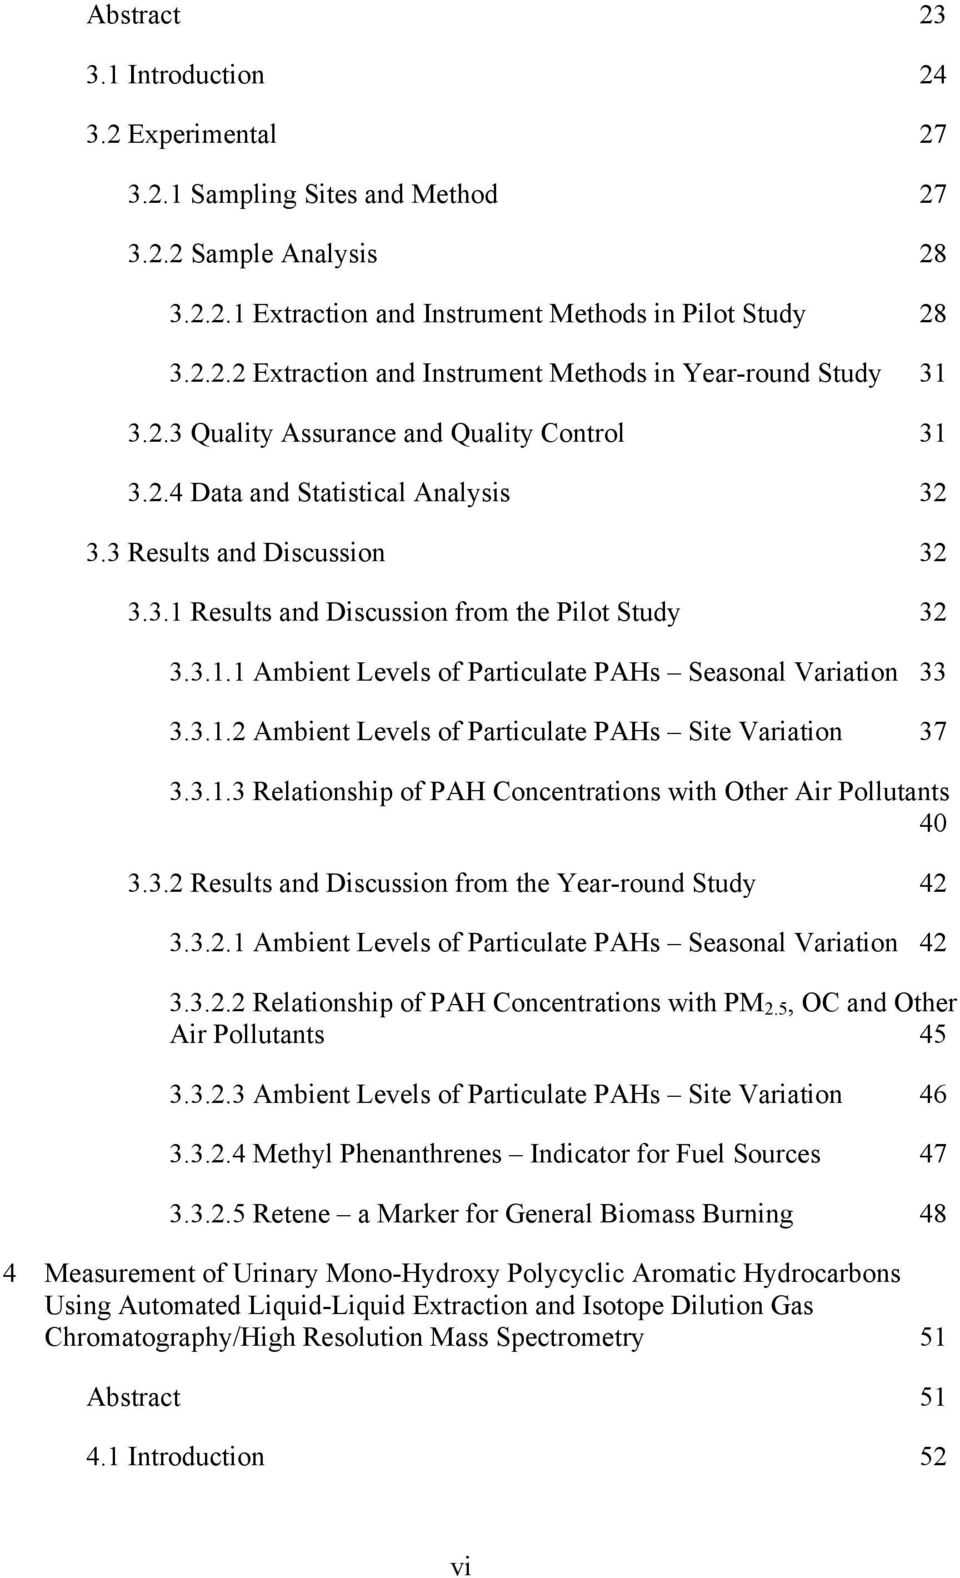 3.1.2 Ambient Levels of Particulate PAHs Site Variation 37 3.3.1.3 Relationship of PAH Concentrations with Other Air Pollutants 40 3.3.2 Results and Discussion from the Year-round Study 42 3.3.2.1 Ambient Levels of Particulate PAHs Seasonal Variation 42 3.